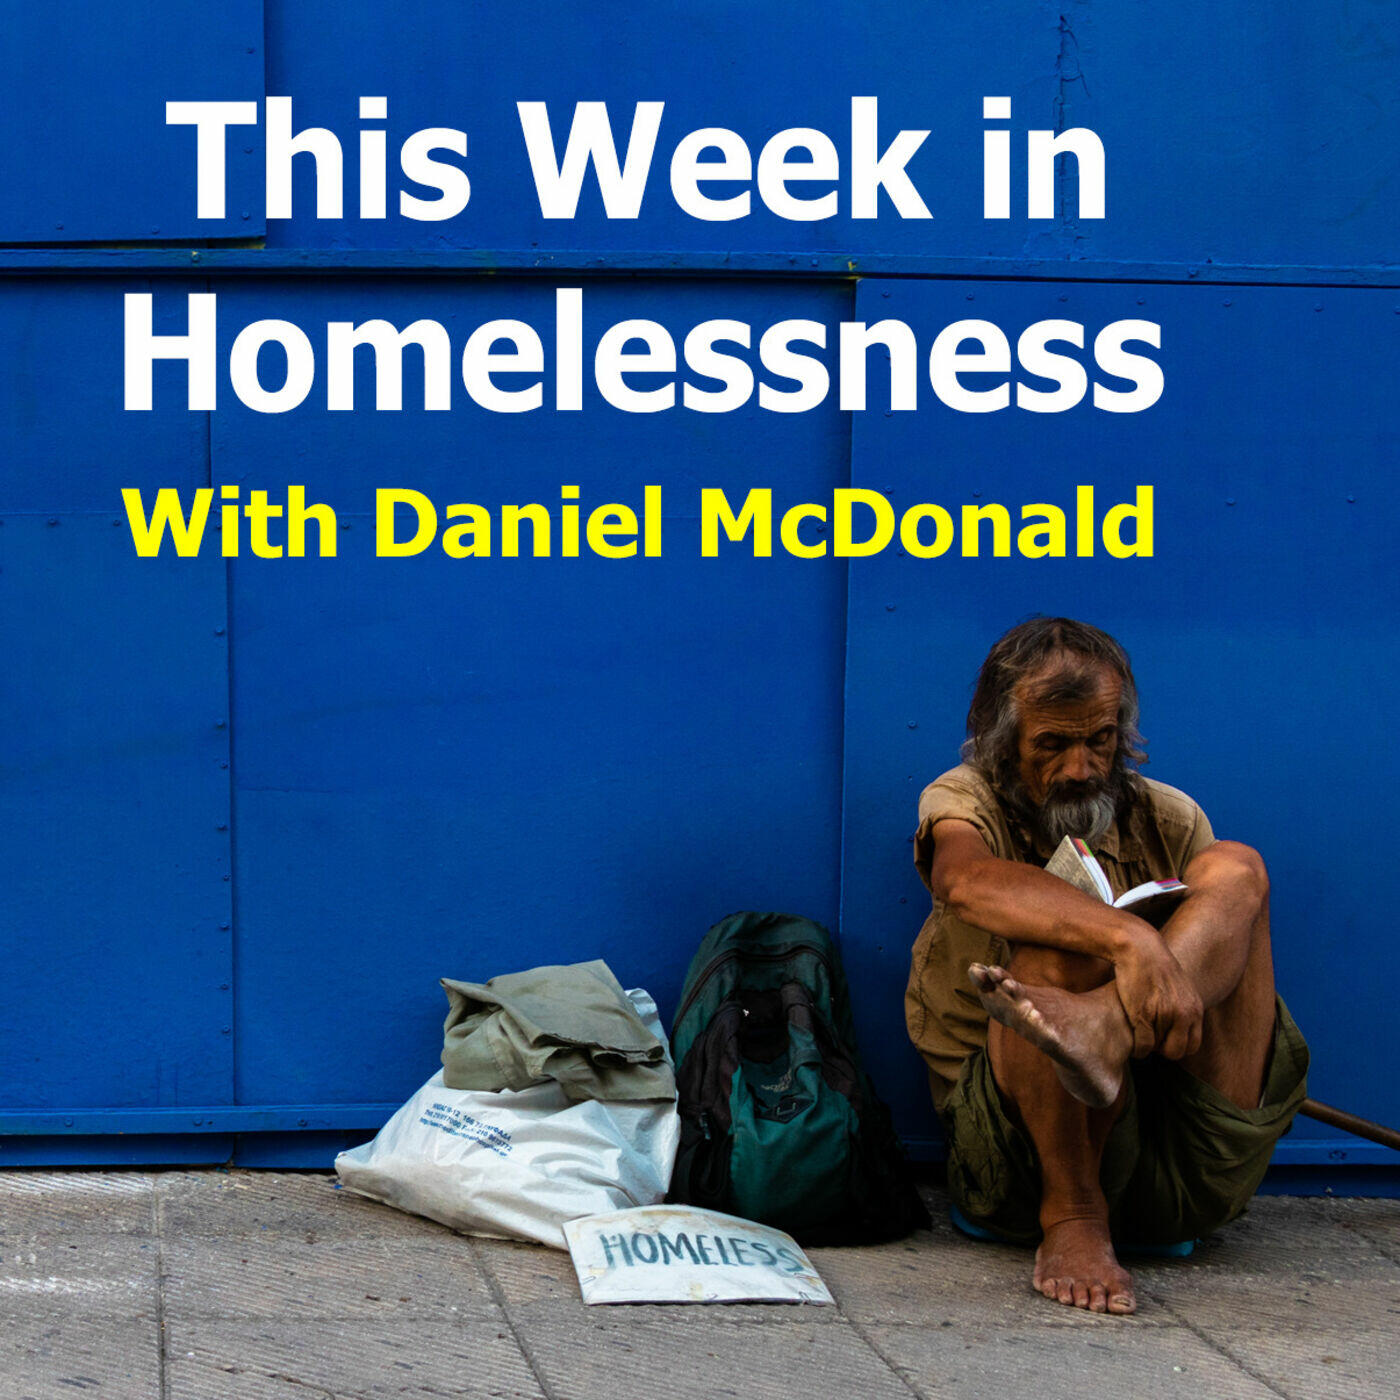 This Week in Homelessness with Daniel McDonald